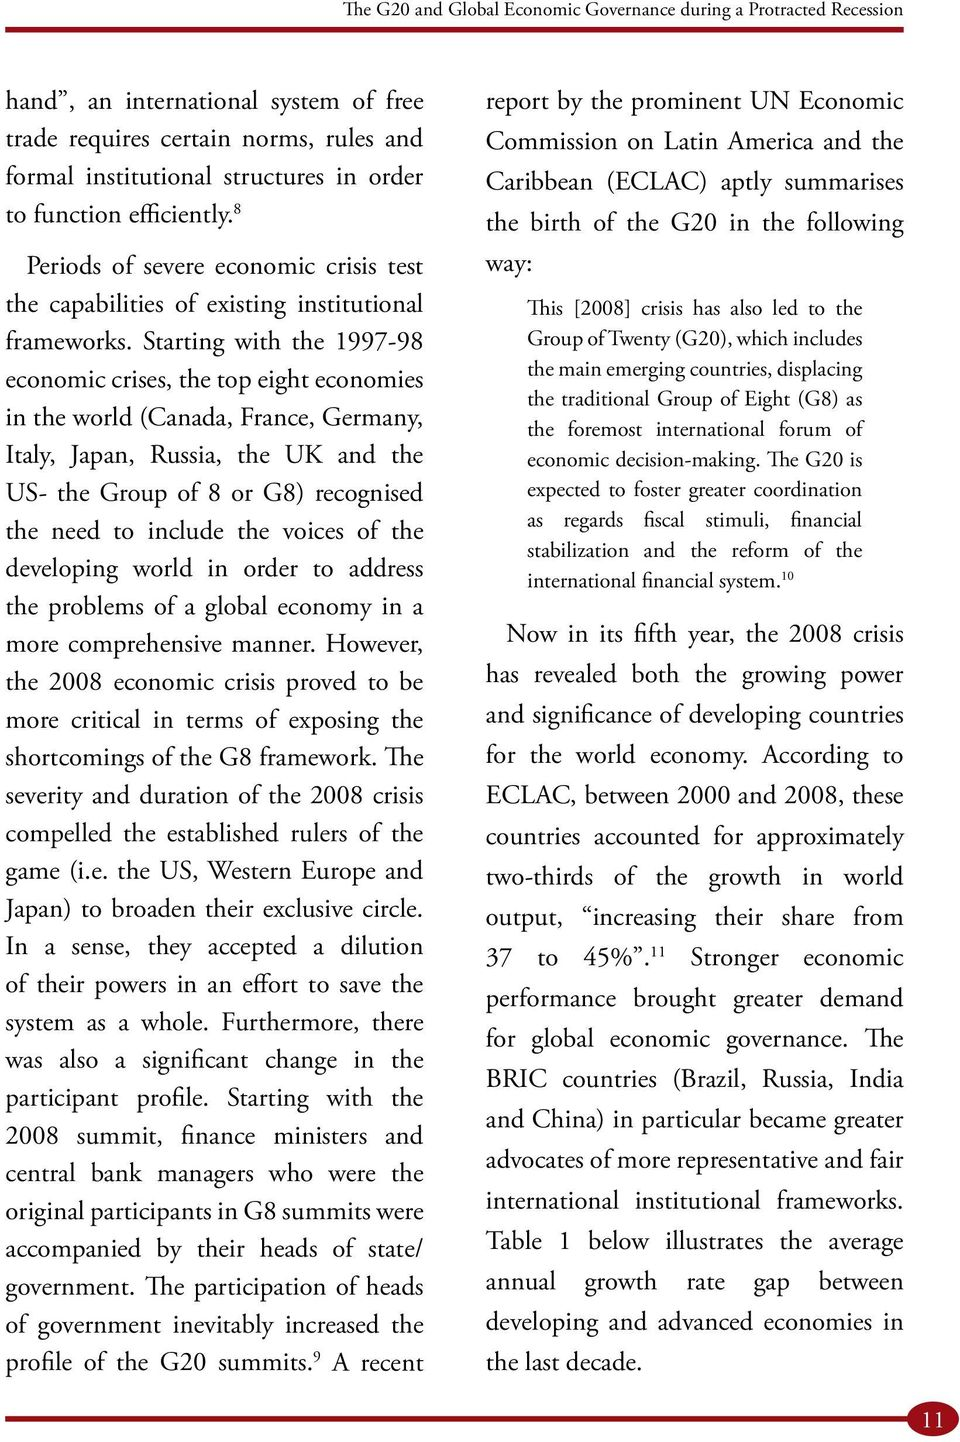 Starting with the 1997-98 economic crises, the top eight economies in the world (Canada, France, Germany, Italy, Japan, Russia, the UK and the US- the Group of 8 or G8) recognised the need to include